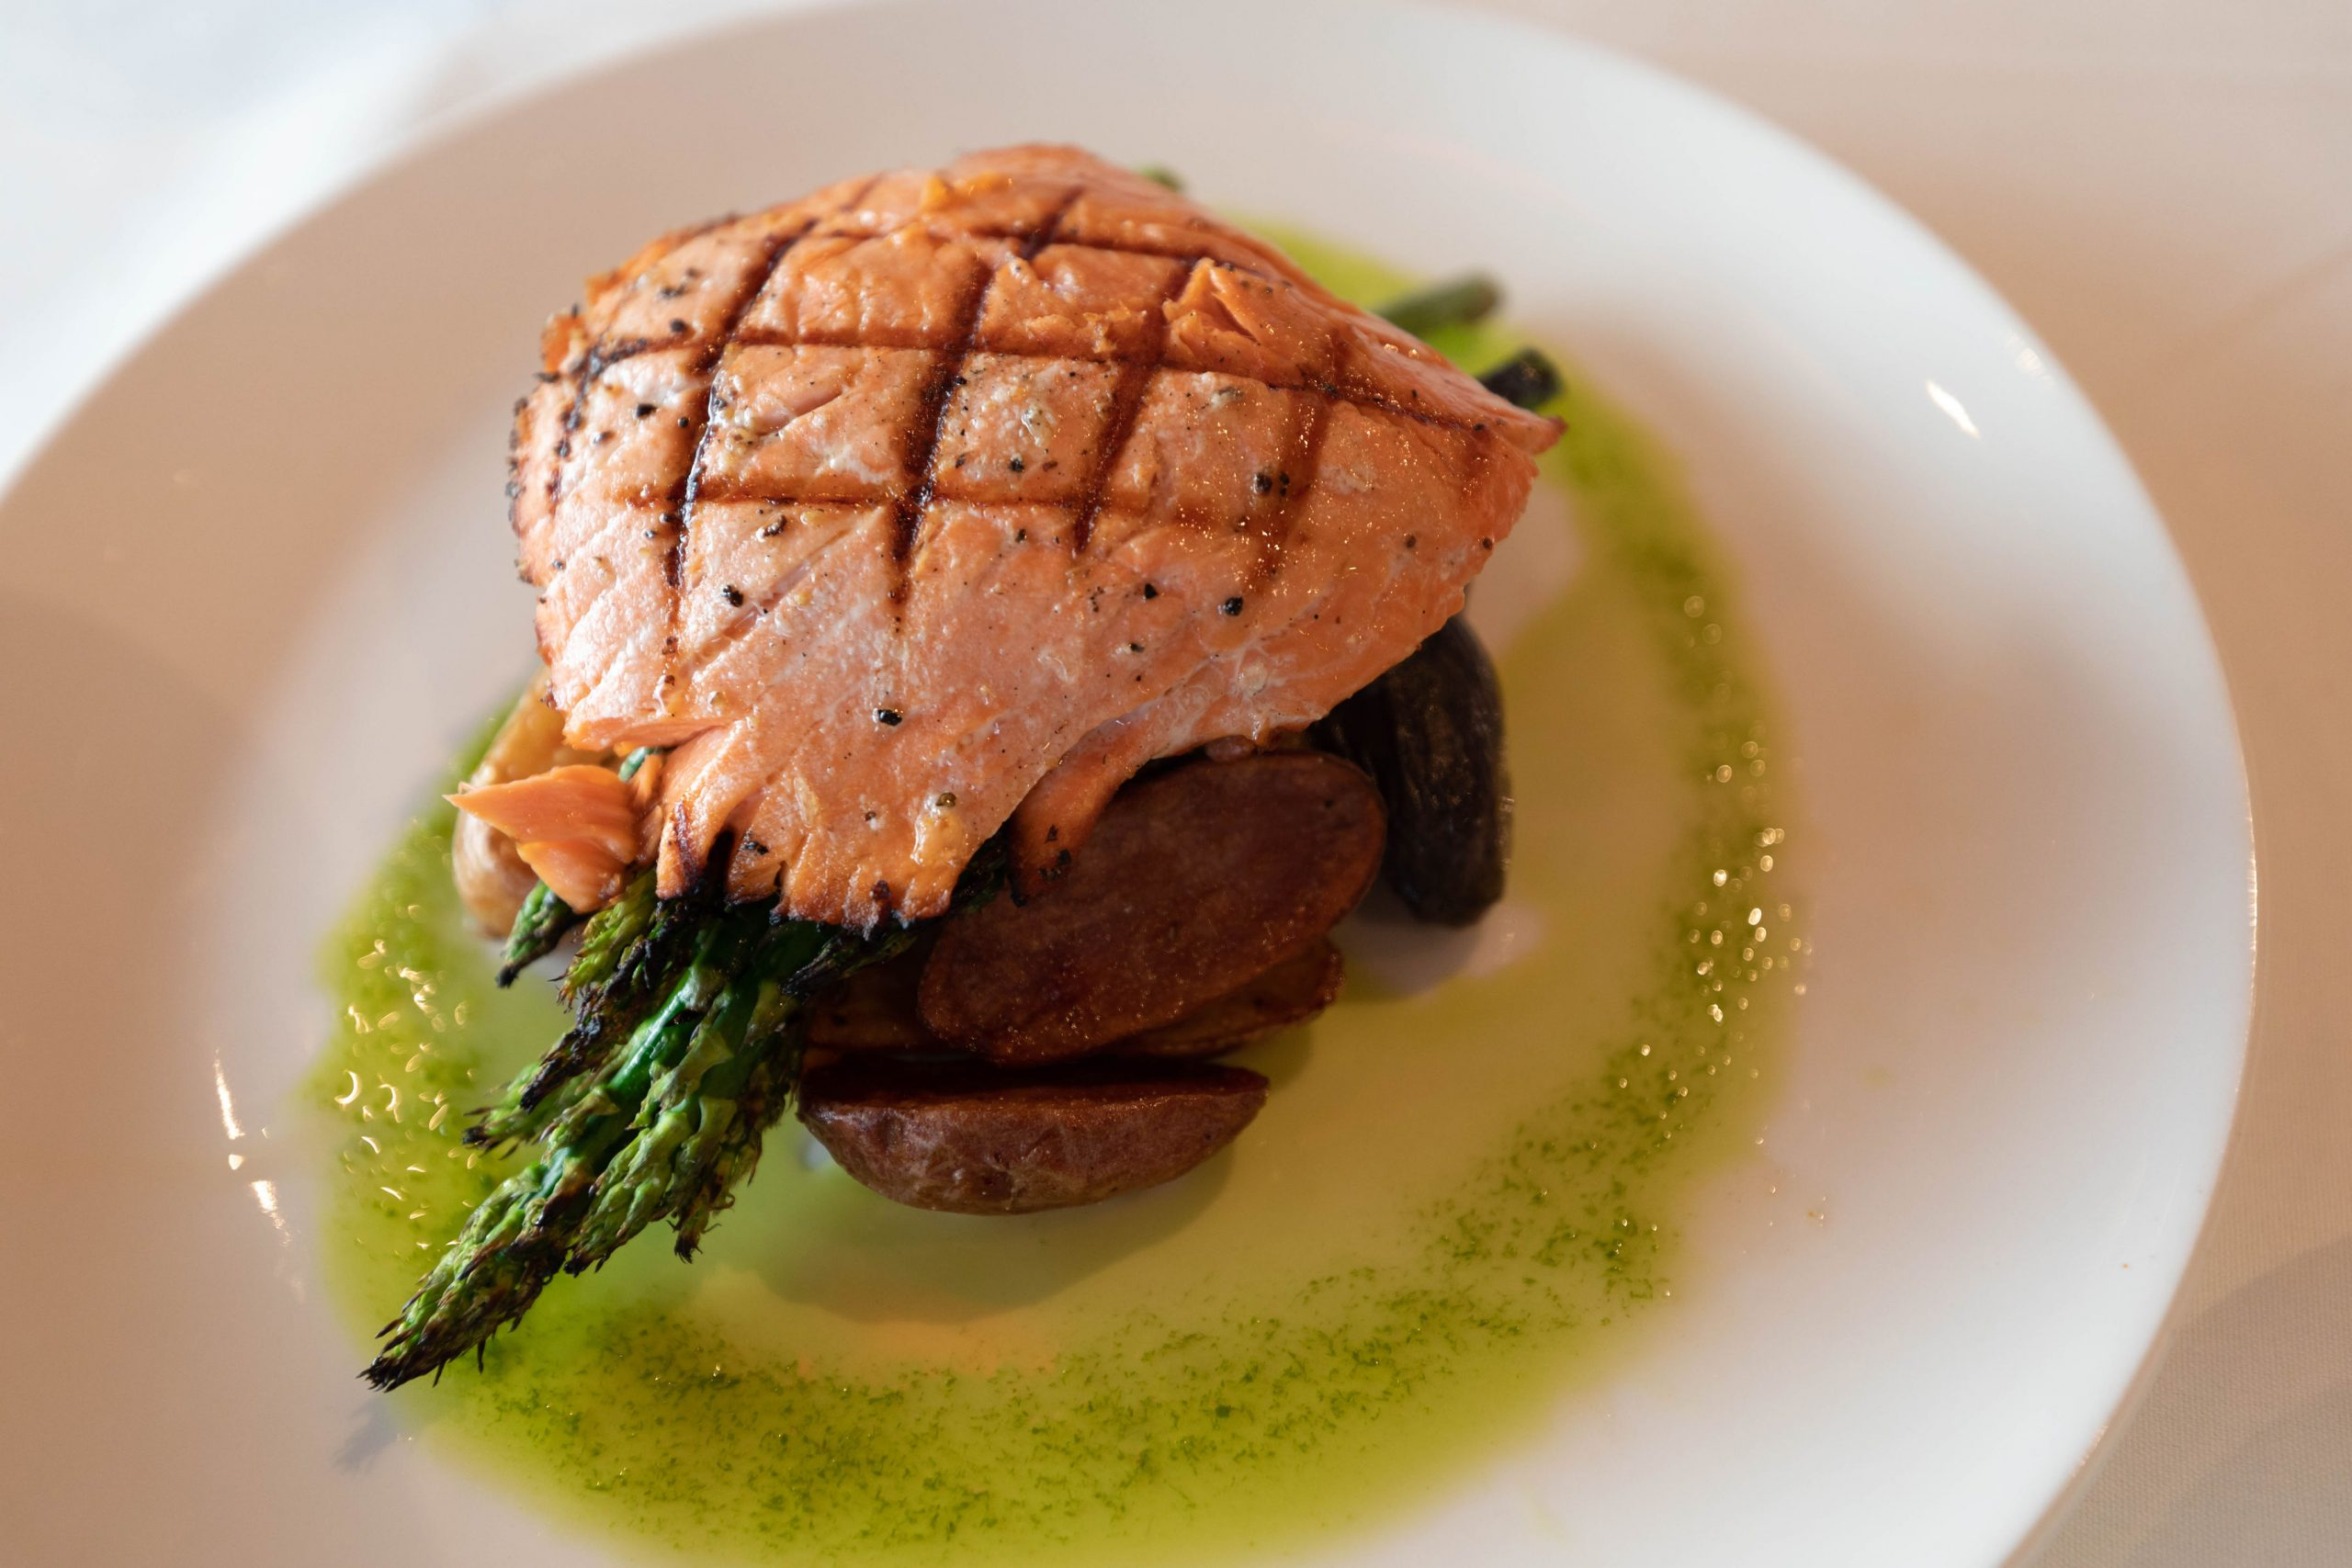 Cutter's Crab House Chef's Seasonal Salmon Dish with Aspargus, Fingerling Potatoes, Grilled, by Annie Fairfax